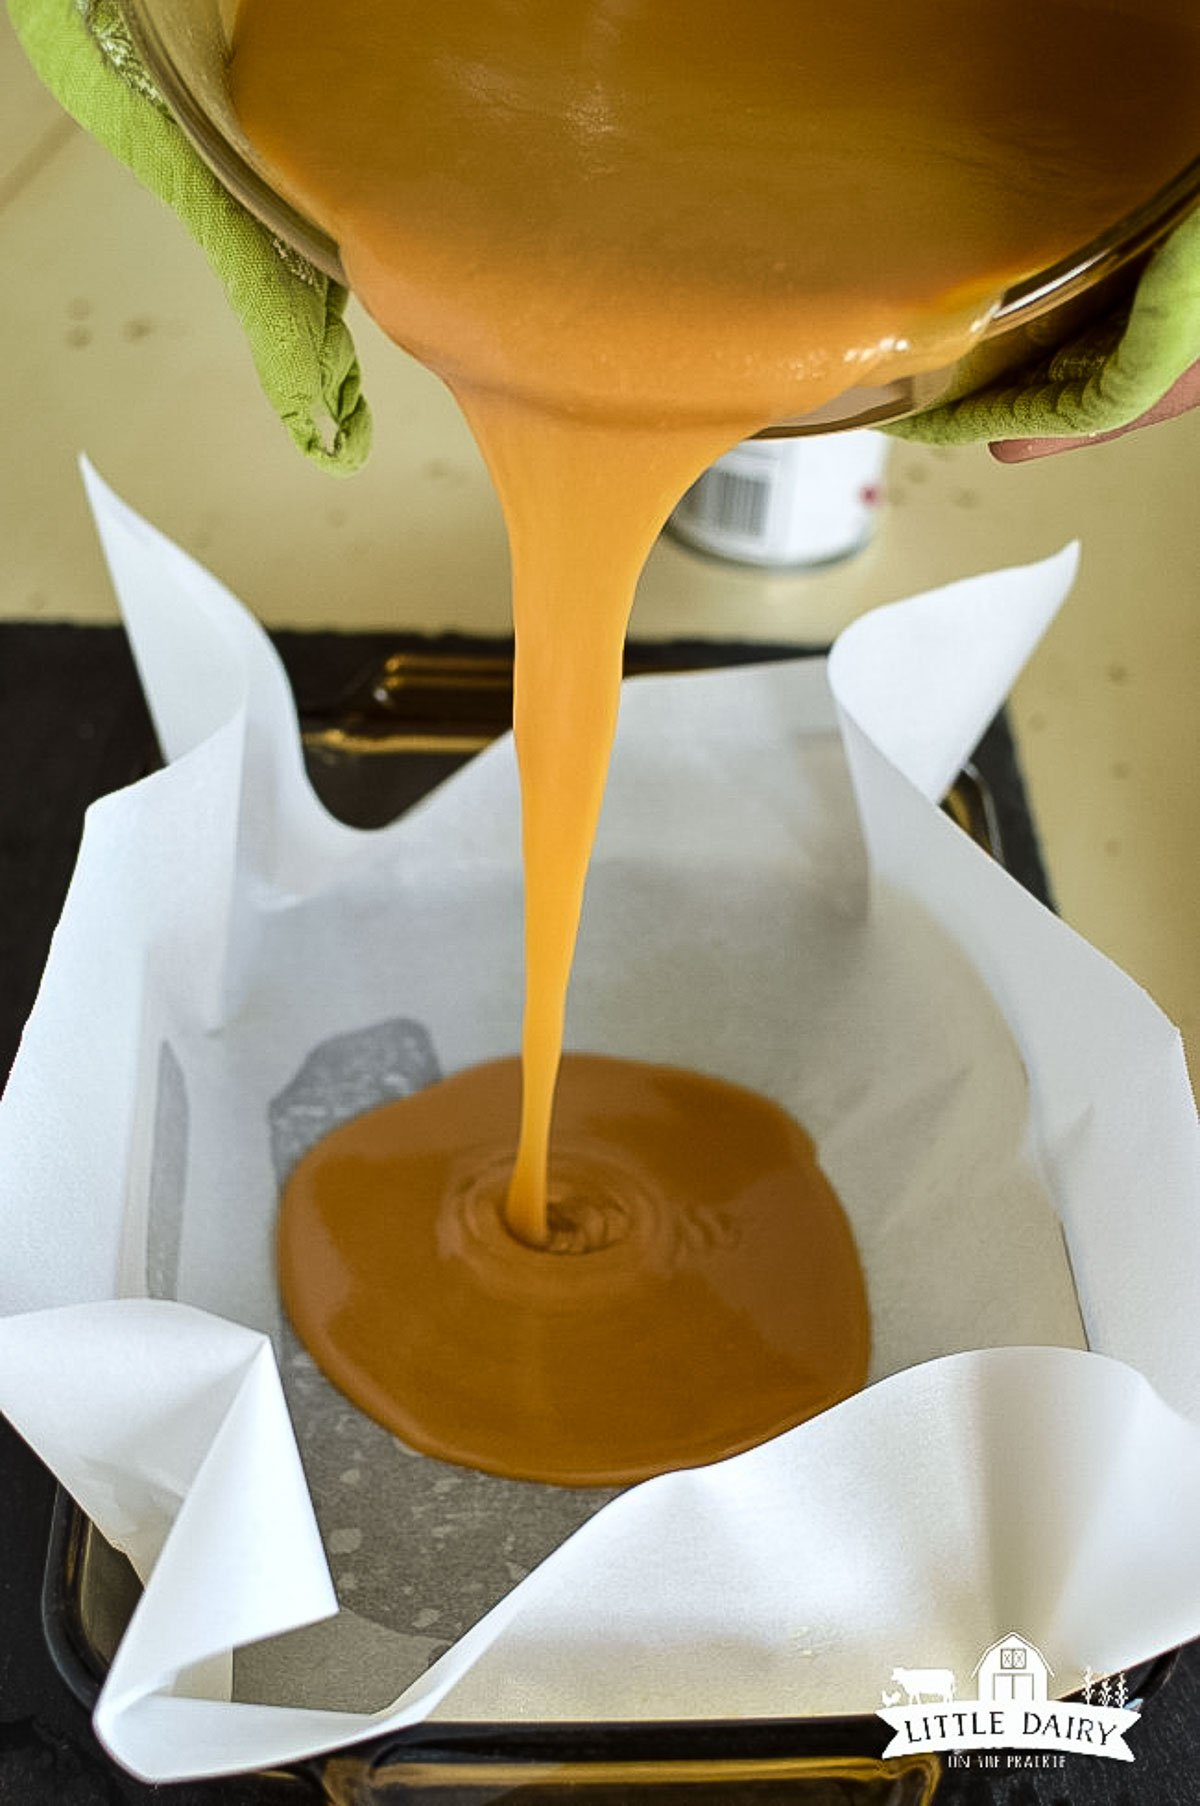 Warm caramel sauce being poured in a pan.